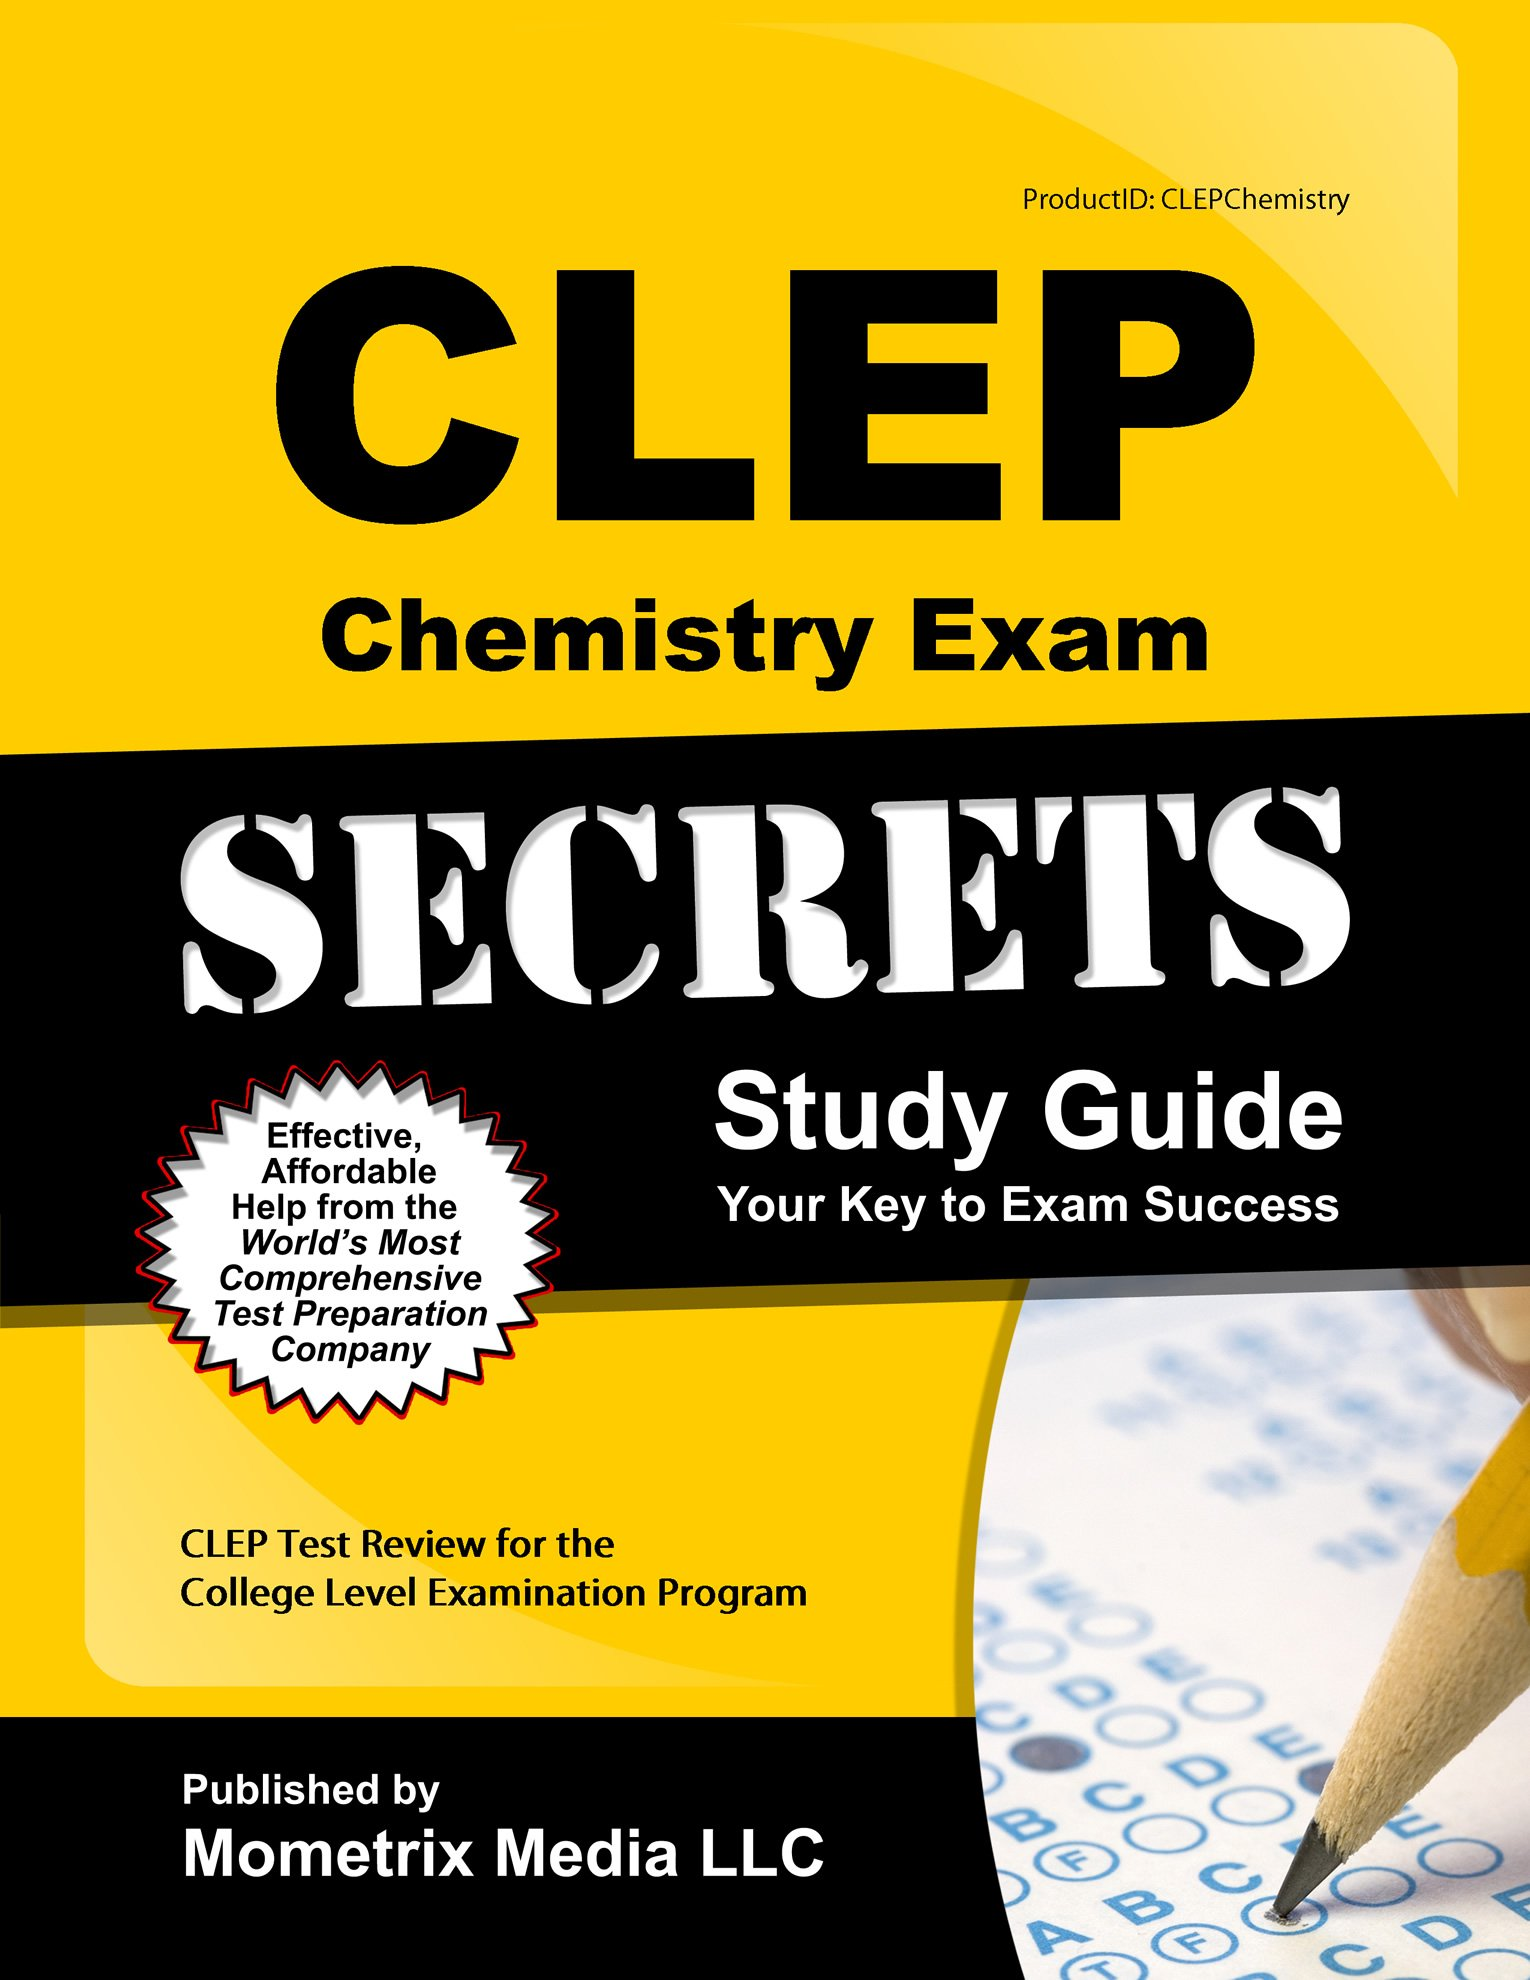 CLEP Chemistry Exam Secrets Study Guide: CLEP Test Review for the College  Level Examination Program: Amazon.com: Books